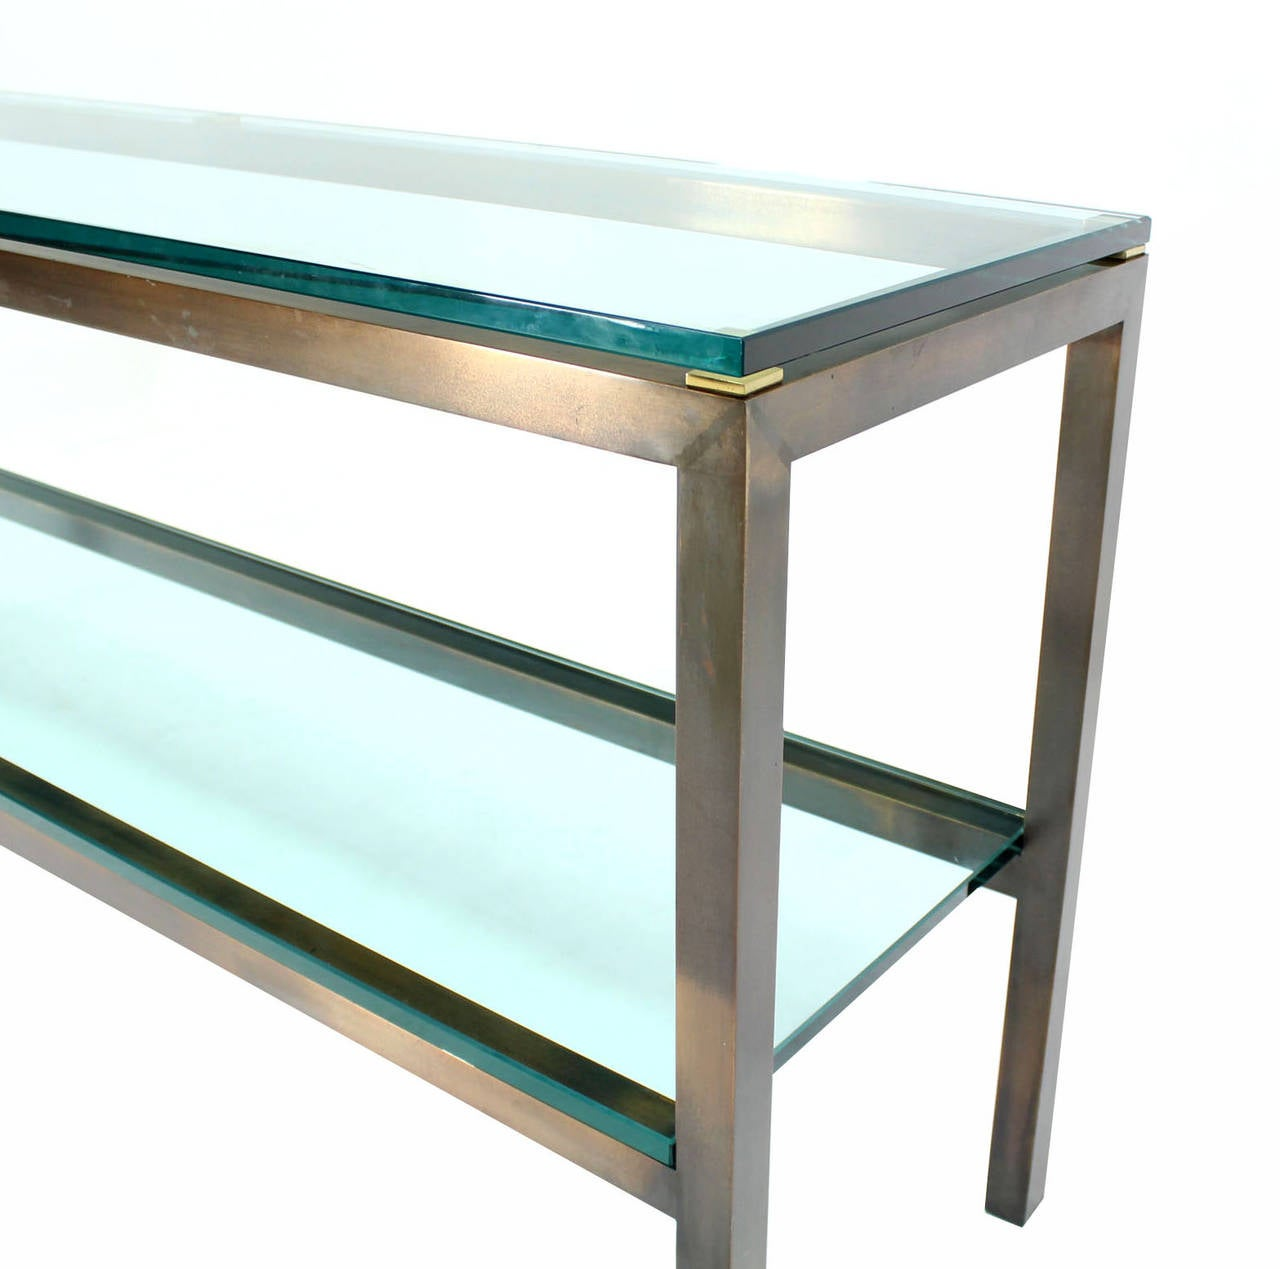 Large solid brass console table by mastercraft at 1stdibs for Sofa table large